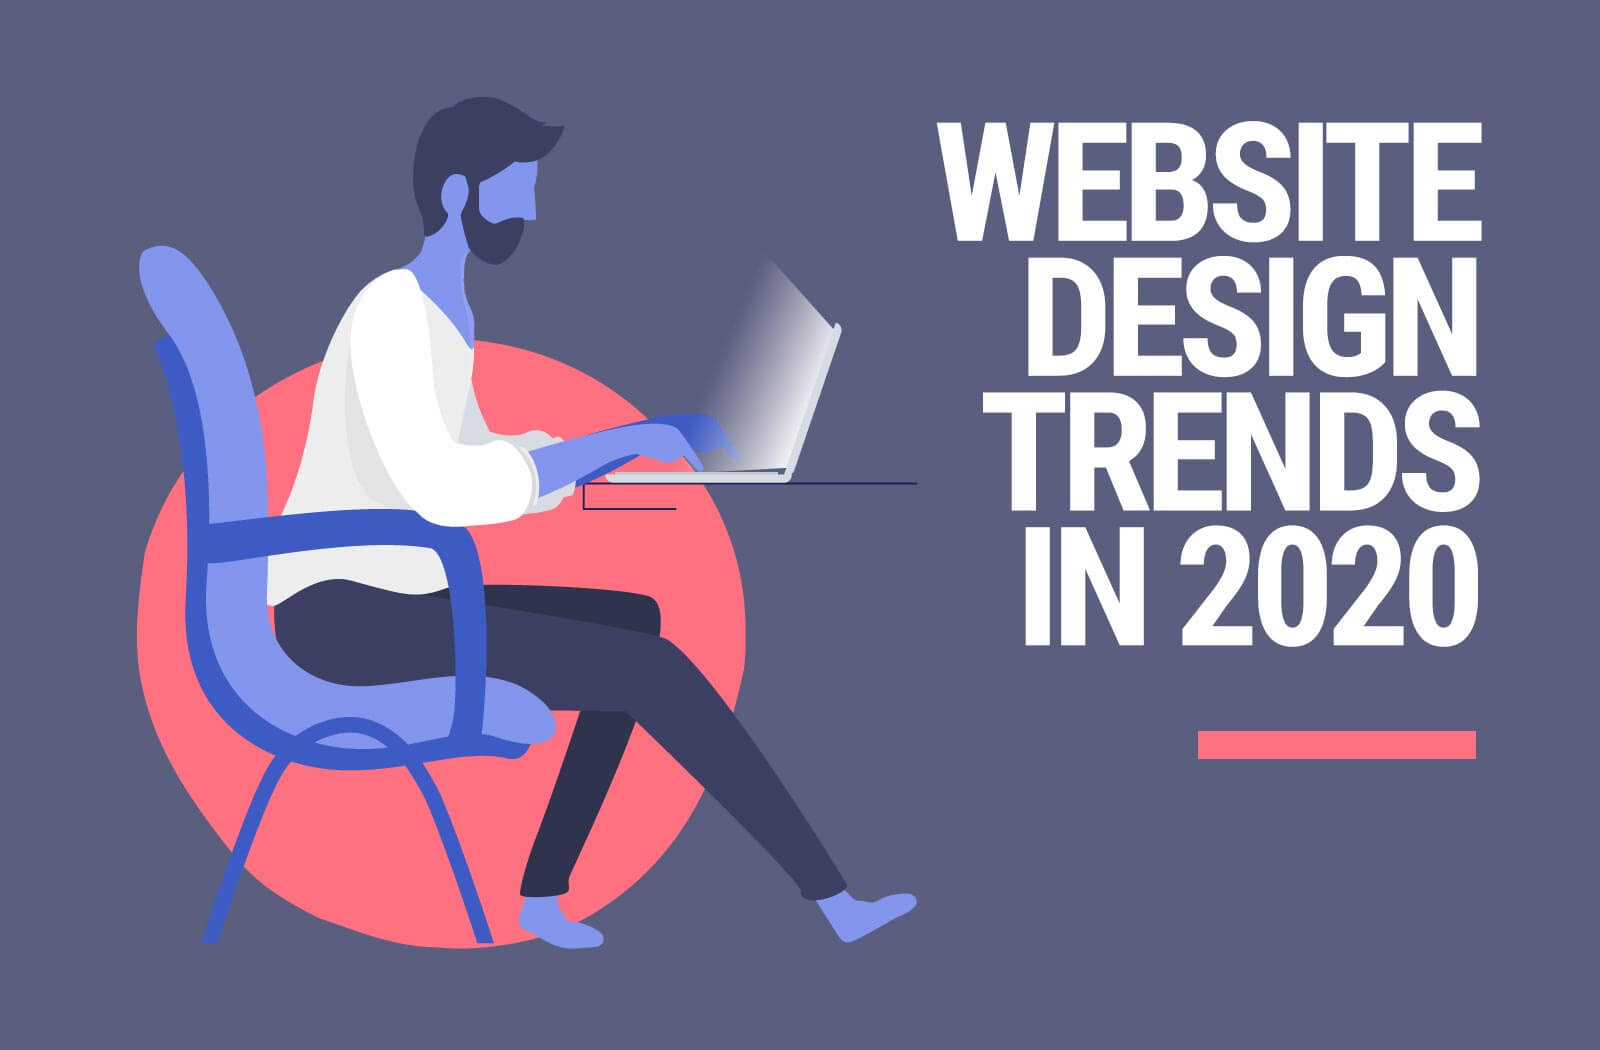 Web-Design-Trends-to-Consider-in-2020